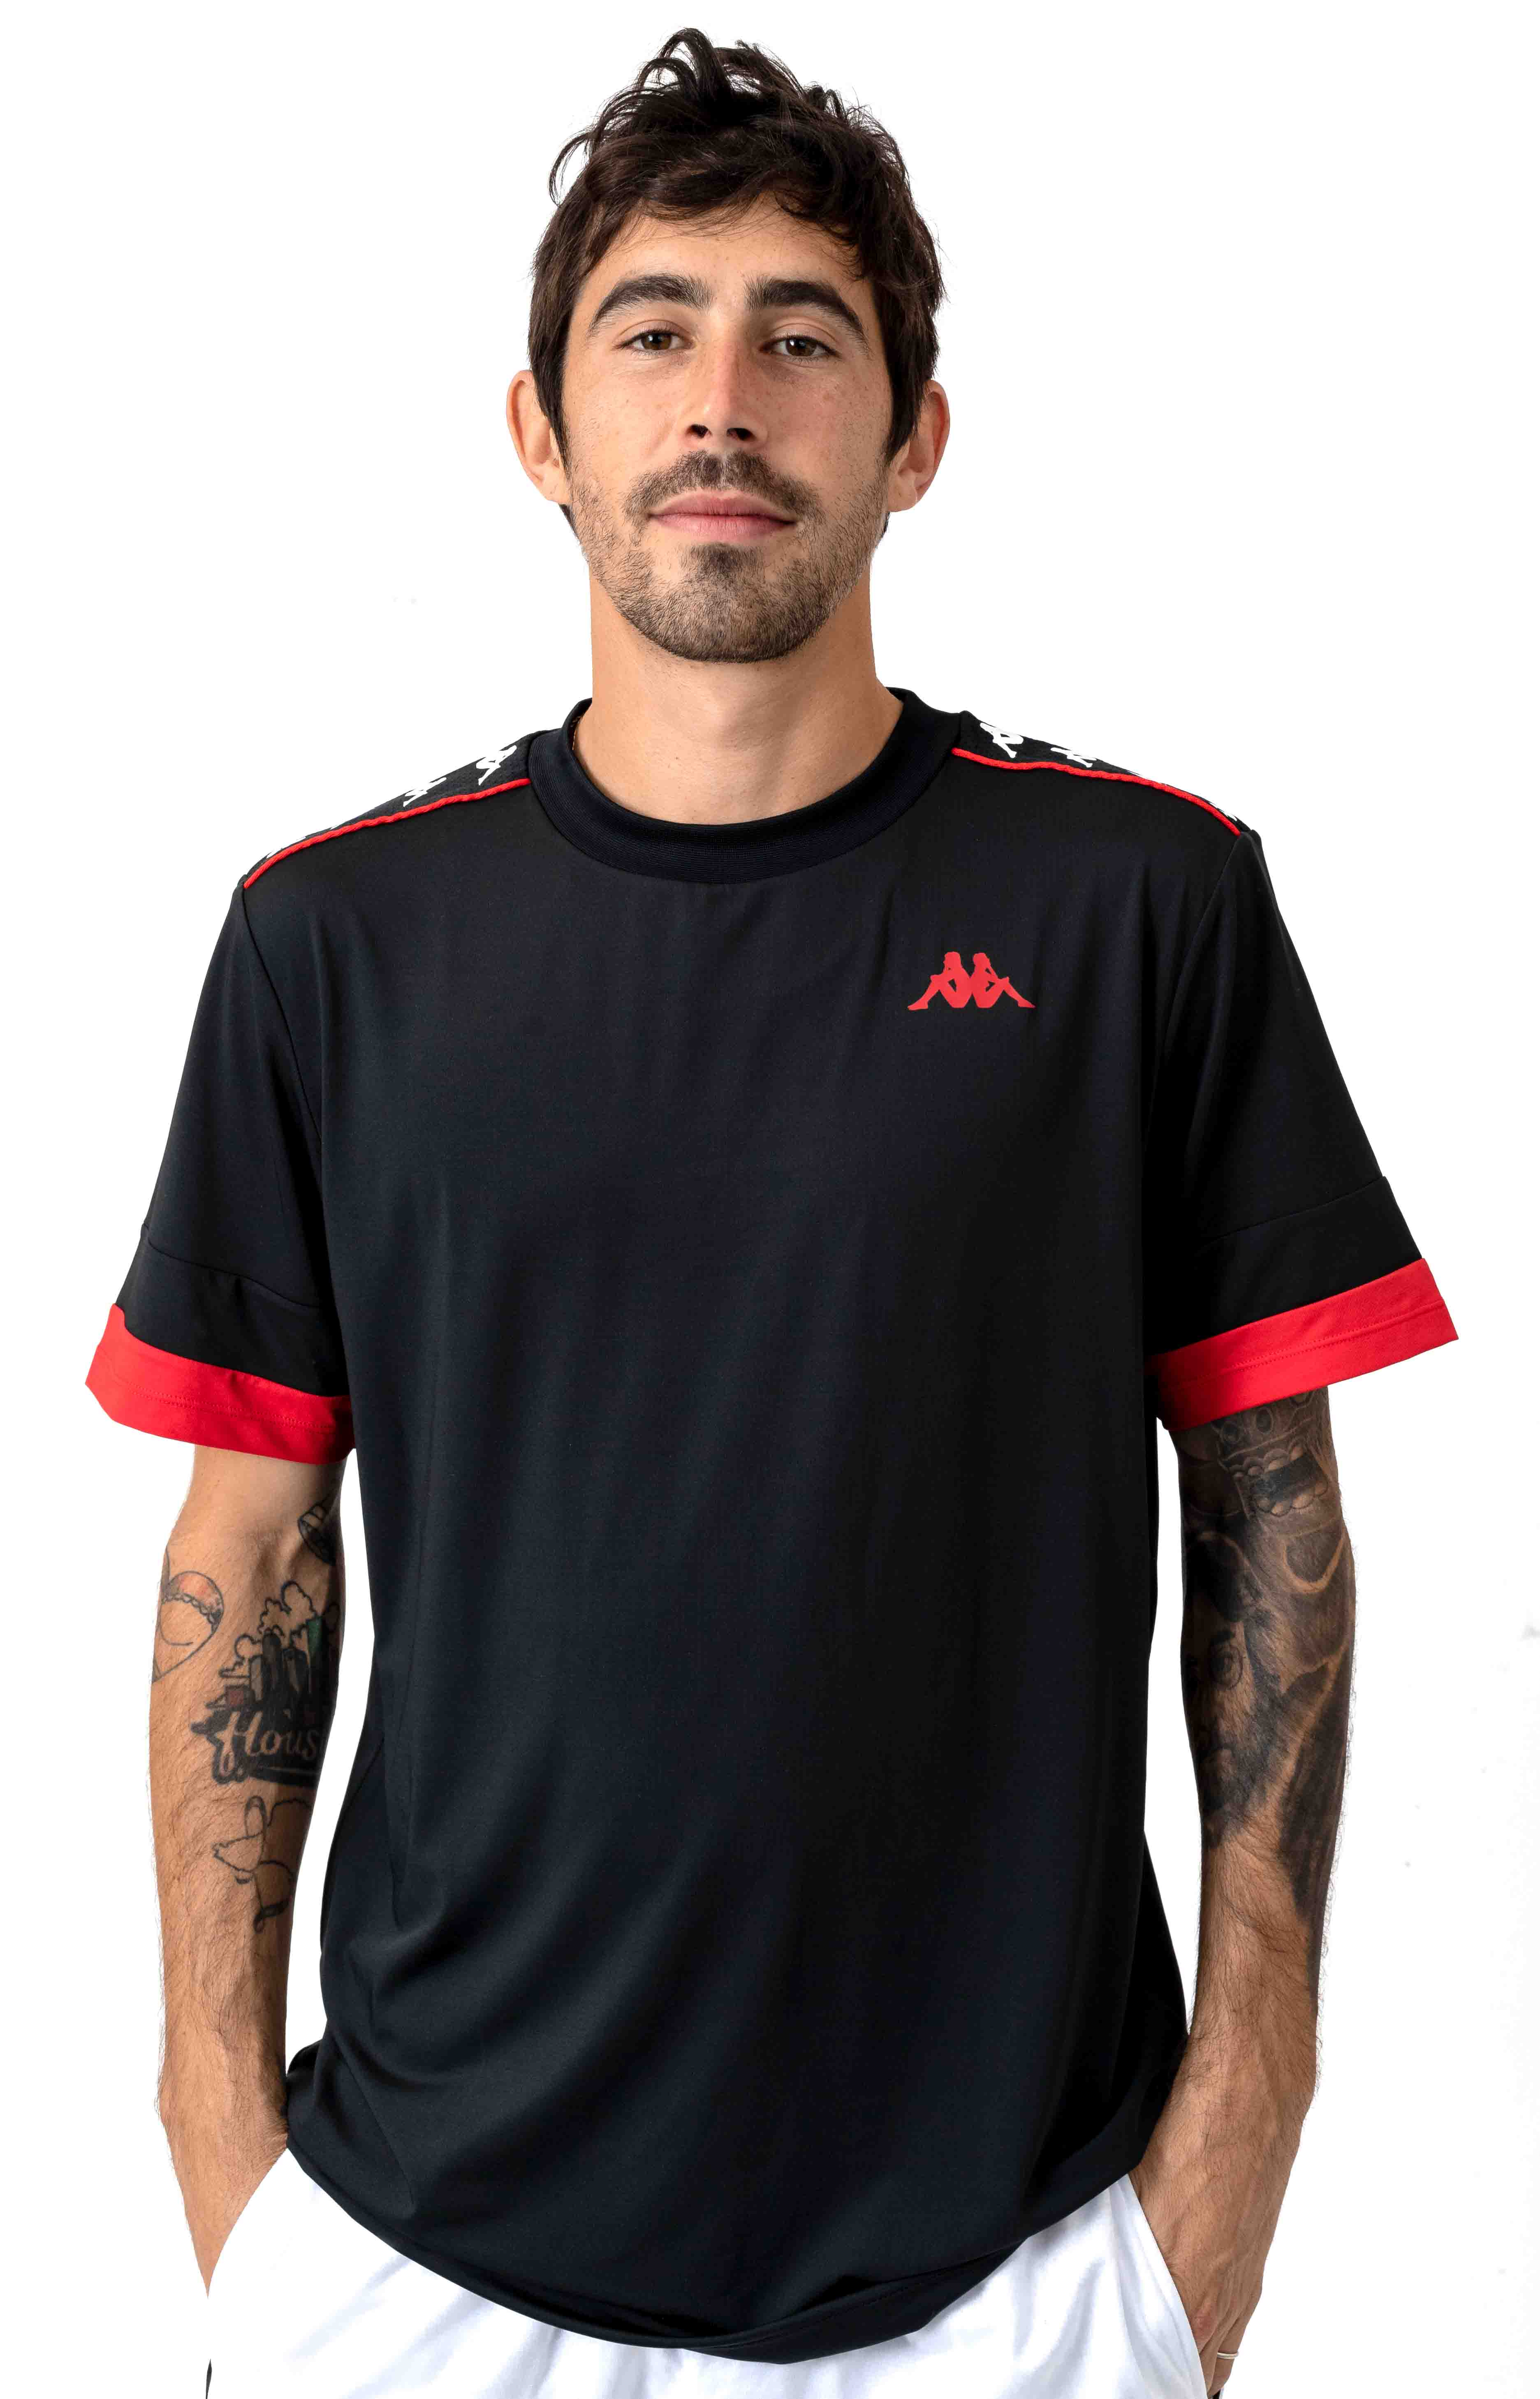 222 Banda Bruxer T-Shirt - Black/Red